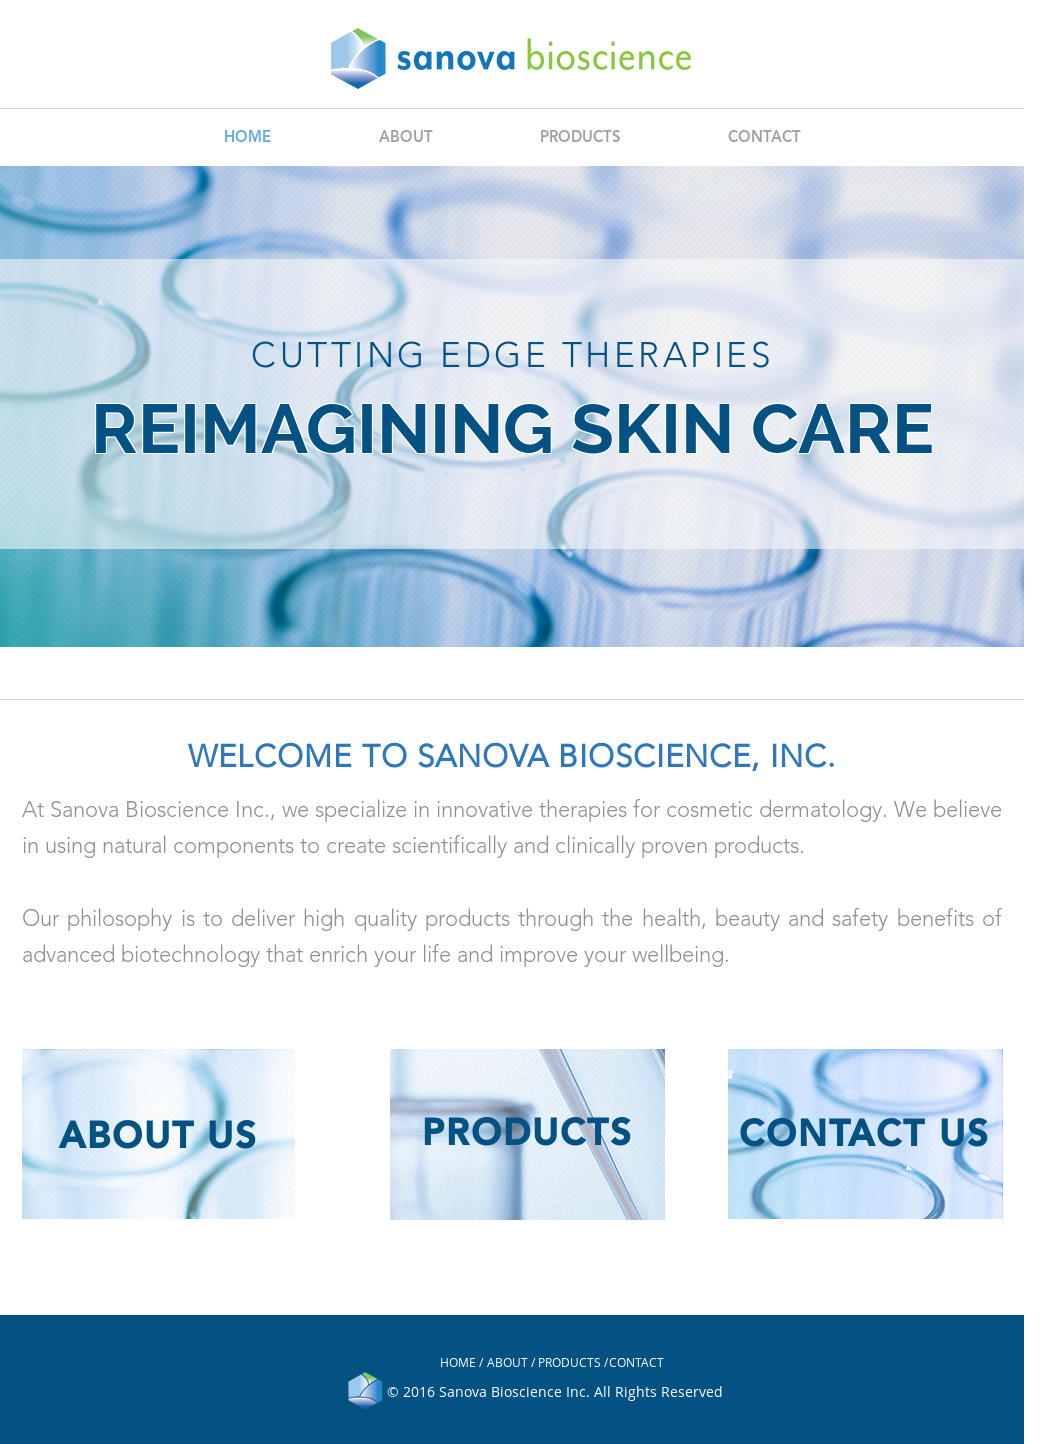 Sanova Bioscience Competitors, Revenue and Employees - Owler